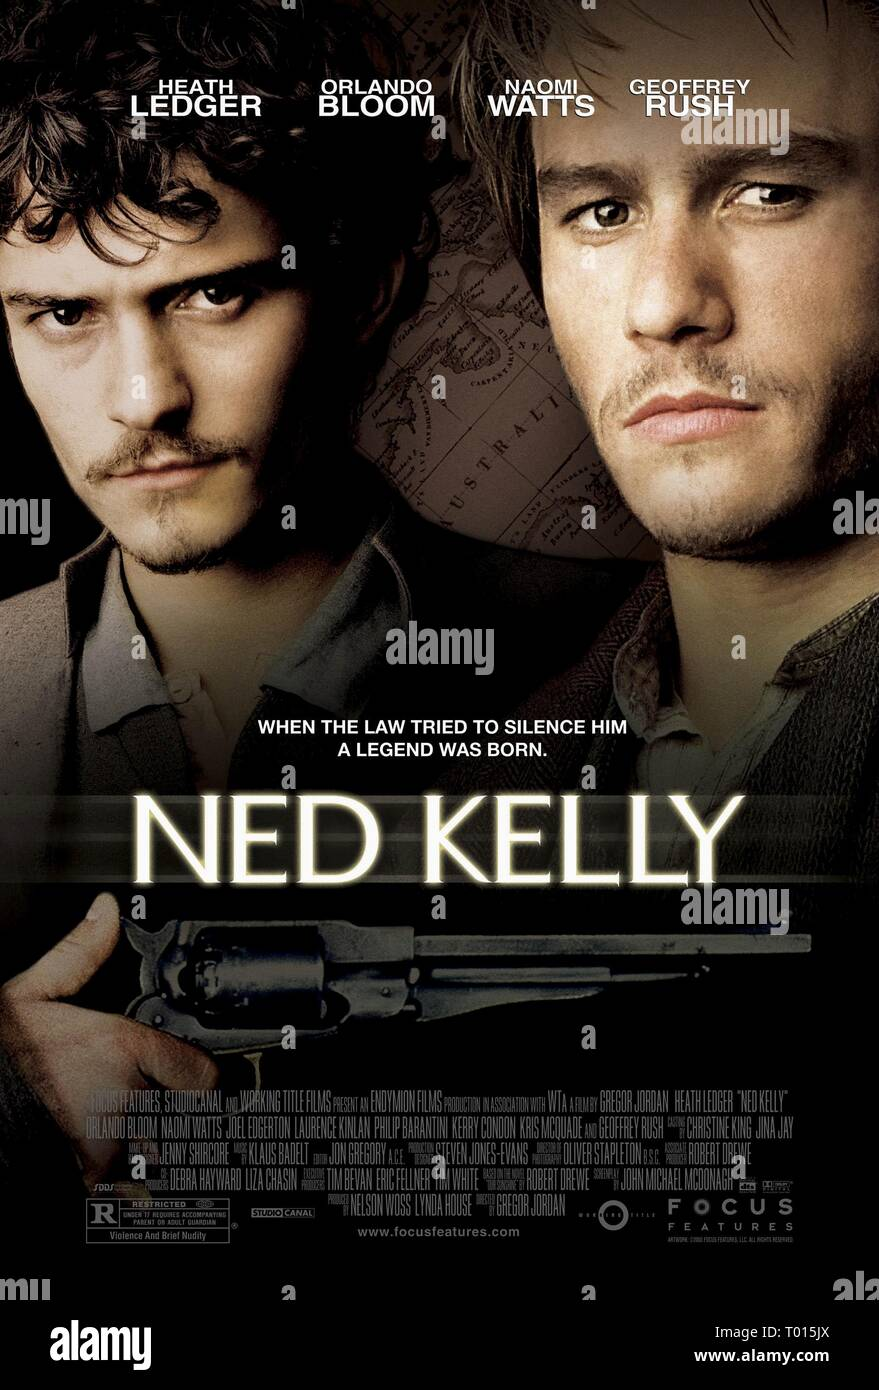 NED KELLY, FILM POSTER, 2003 - Stock Image